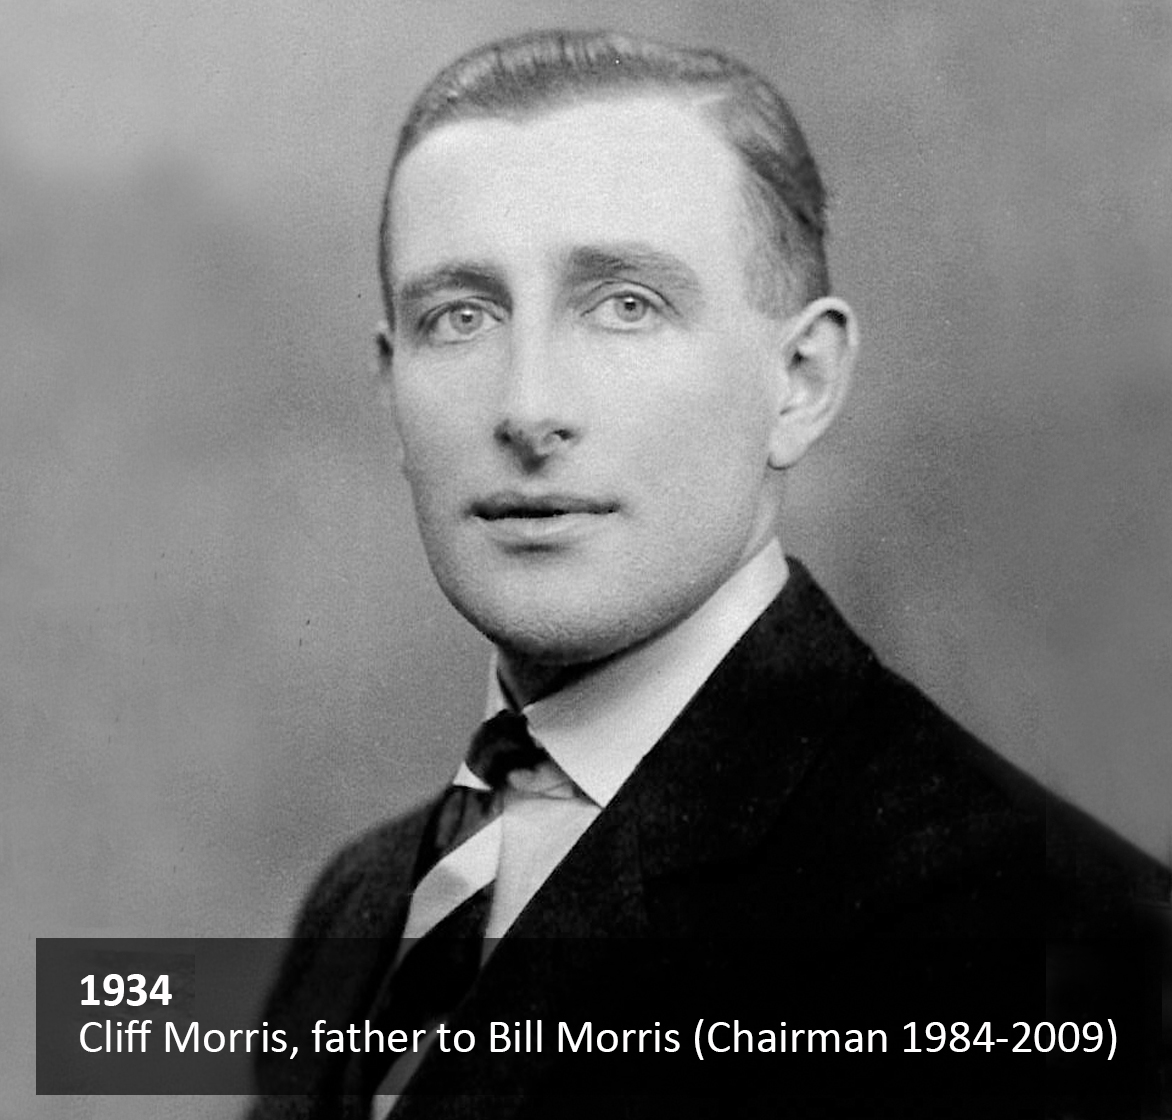 Cliff Morris, father to Bill Morris (Chairman 1984-2009)